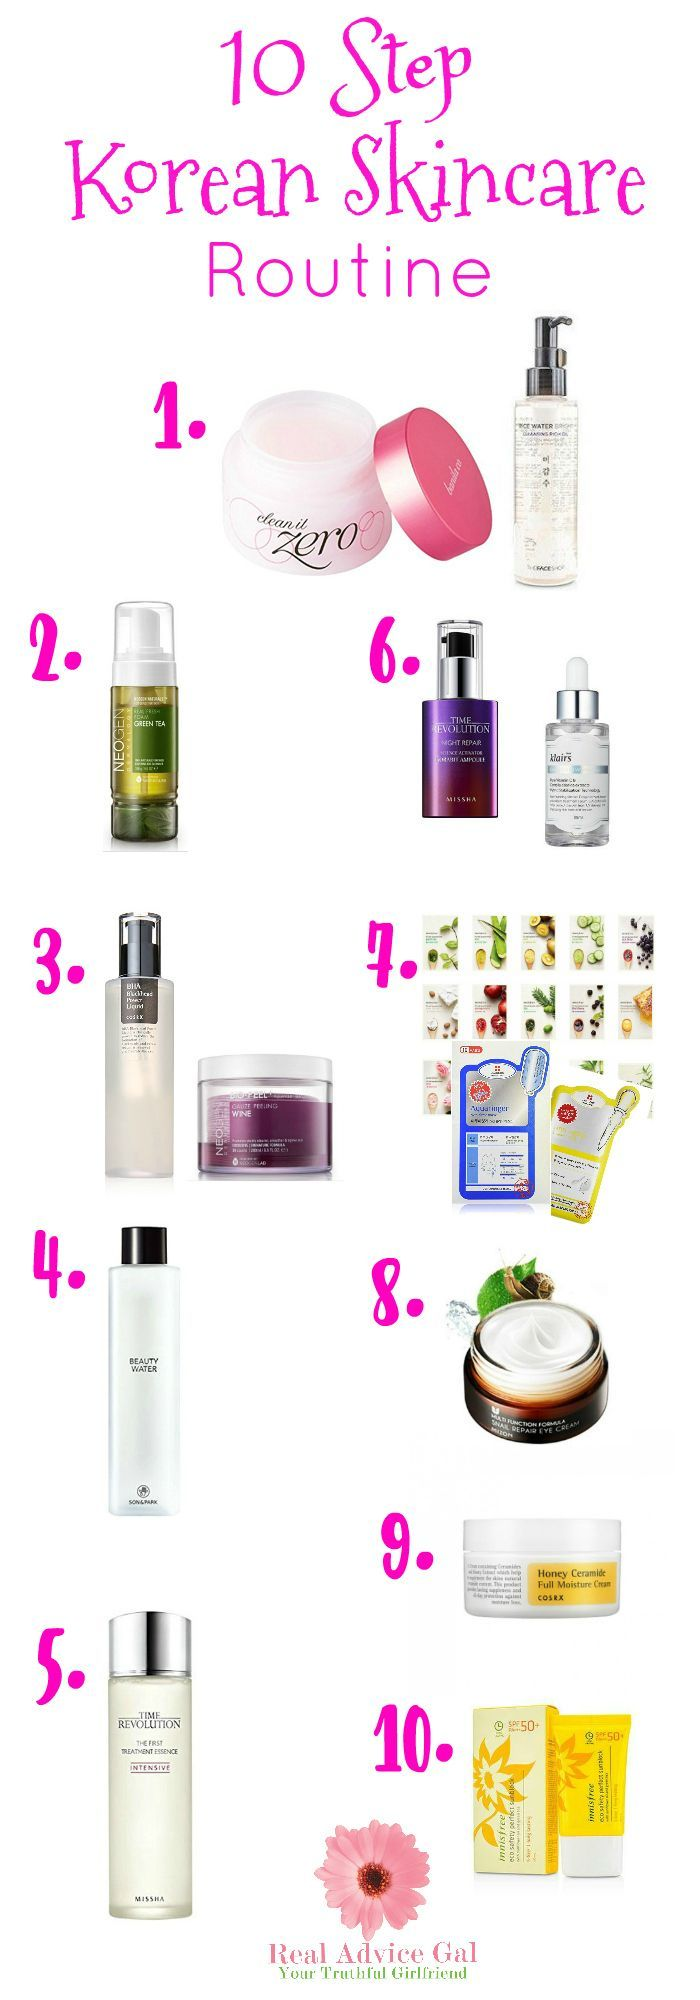 Do you want a healthy, glowing skin? Check out the 10 step